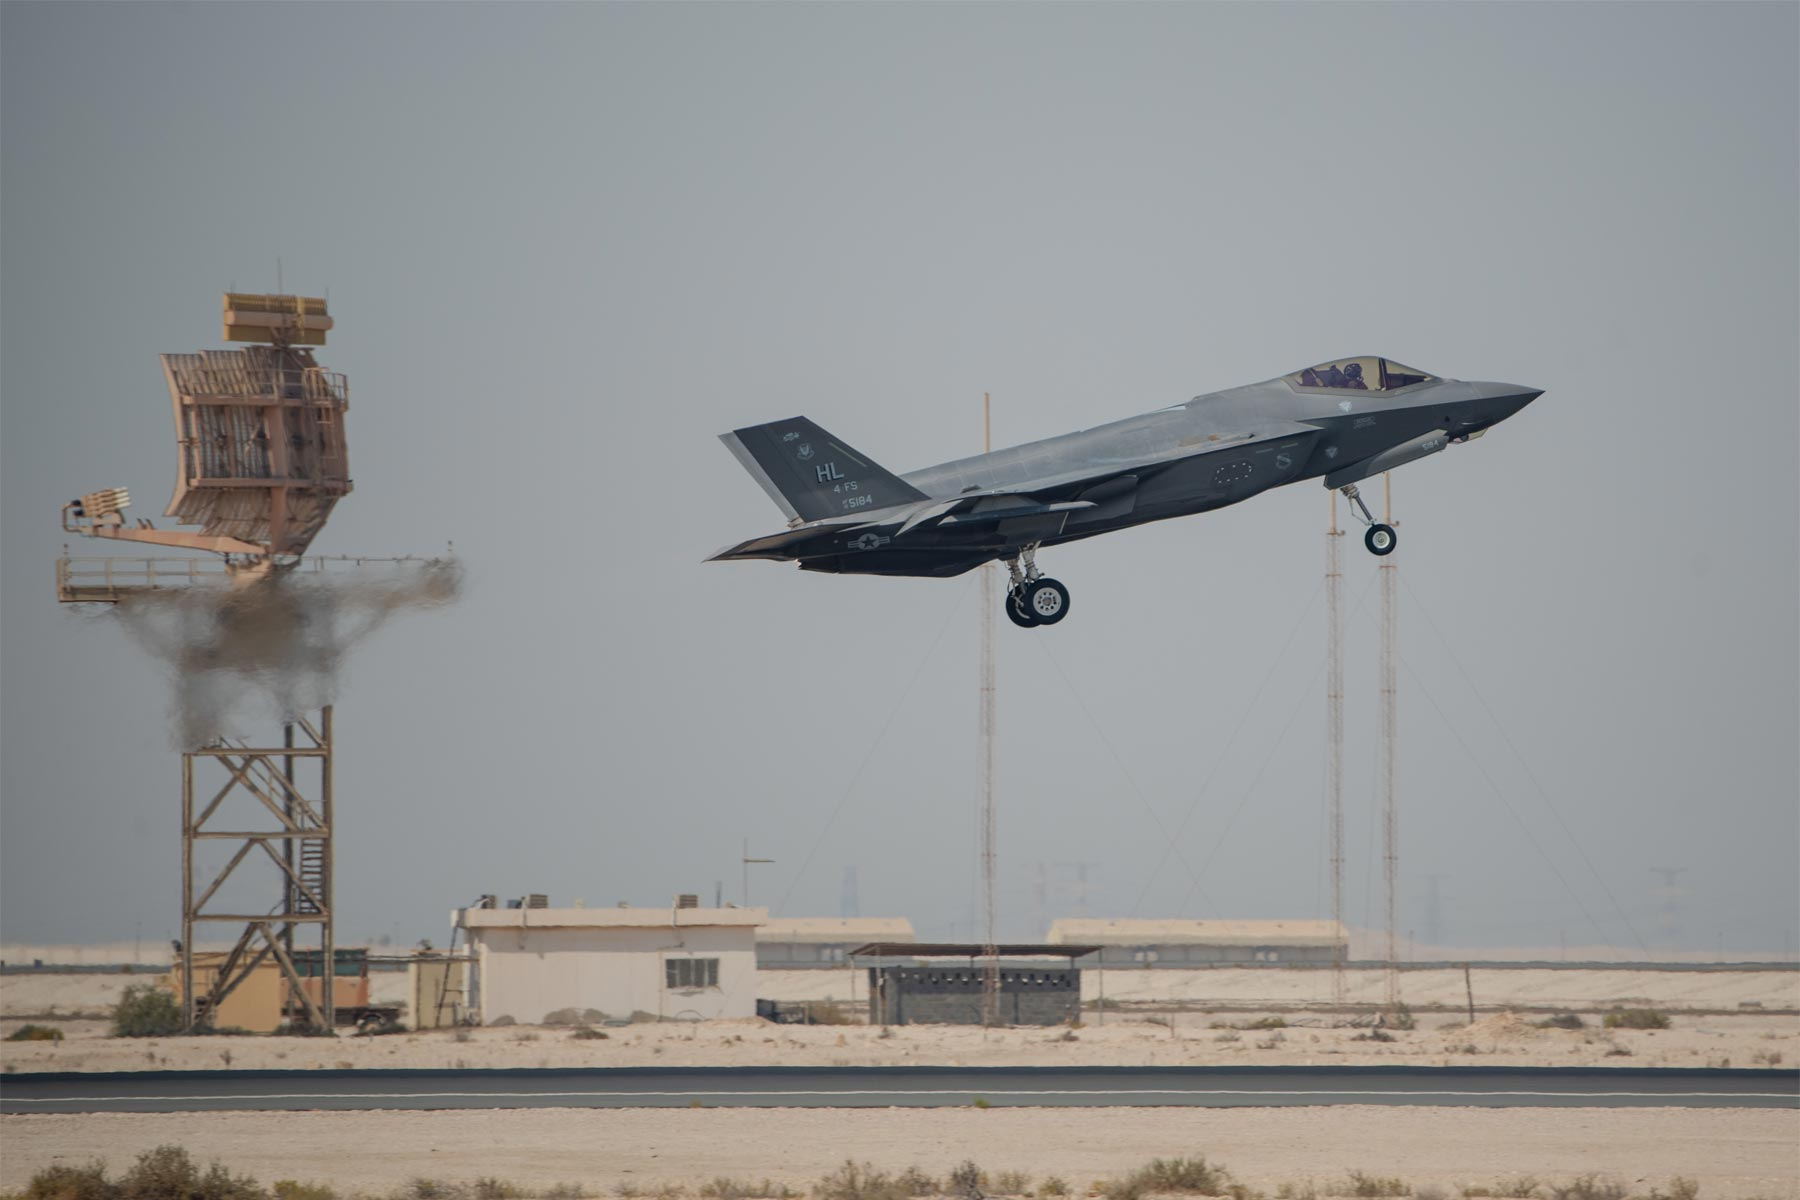 Air Force Tests How Quickly, Nimbly It Can Deploy F-35 in 'Agile Lightning'